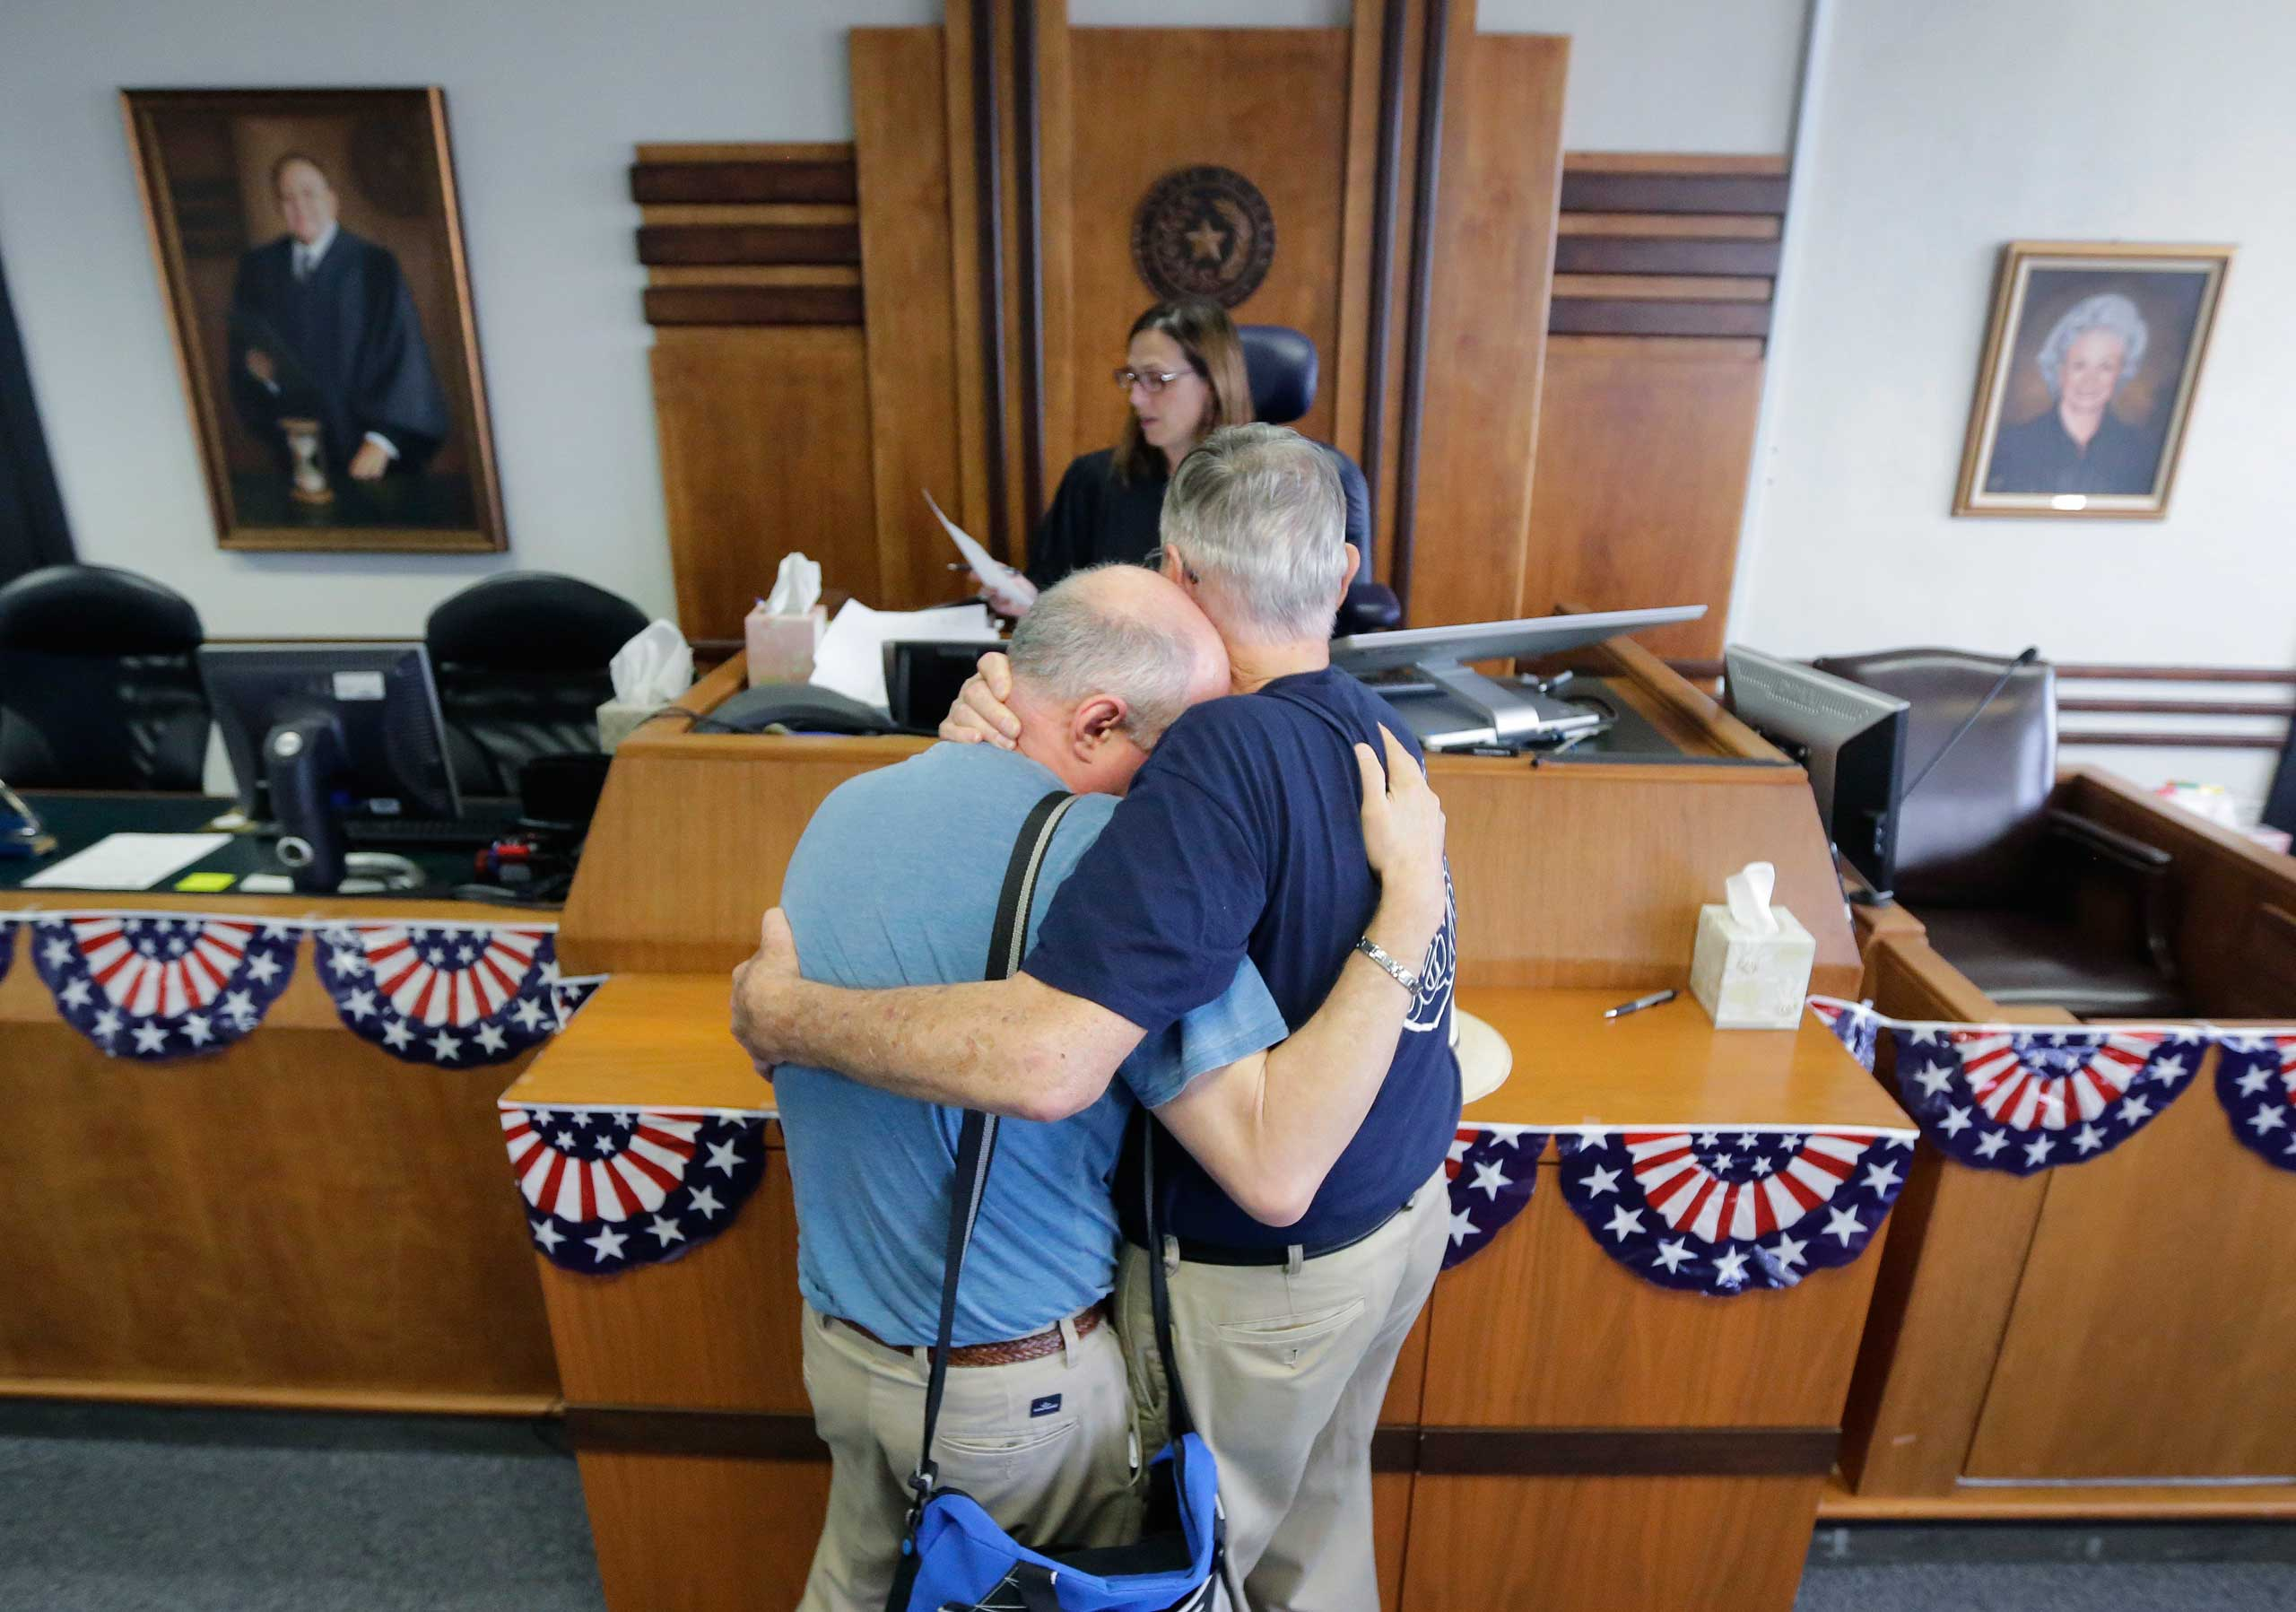 Gerald Gafford, right, comforts his partner of 28 years, Jeff Sralla, left, as they stand before Judge Amy Clark Meachum to receive a time waiver before marrying at the Travis County Courthouse in Austin, Texas on June 26, 2015.